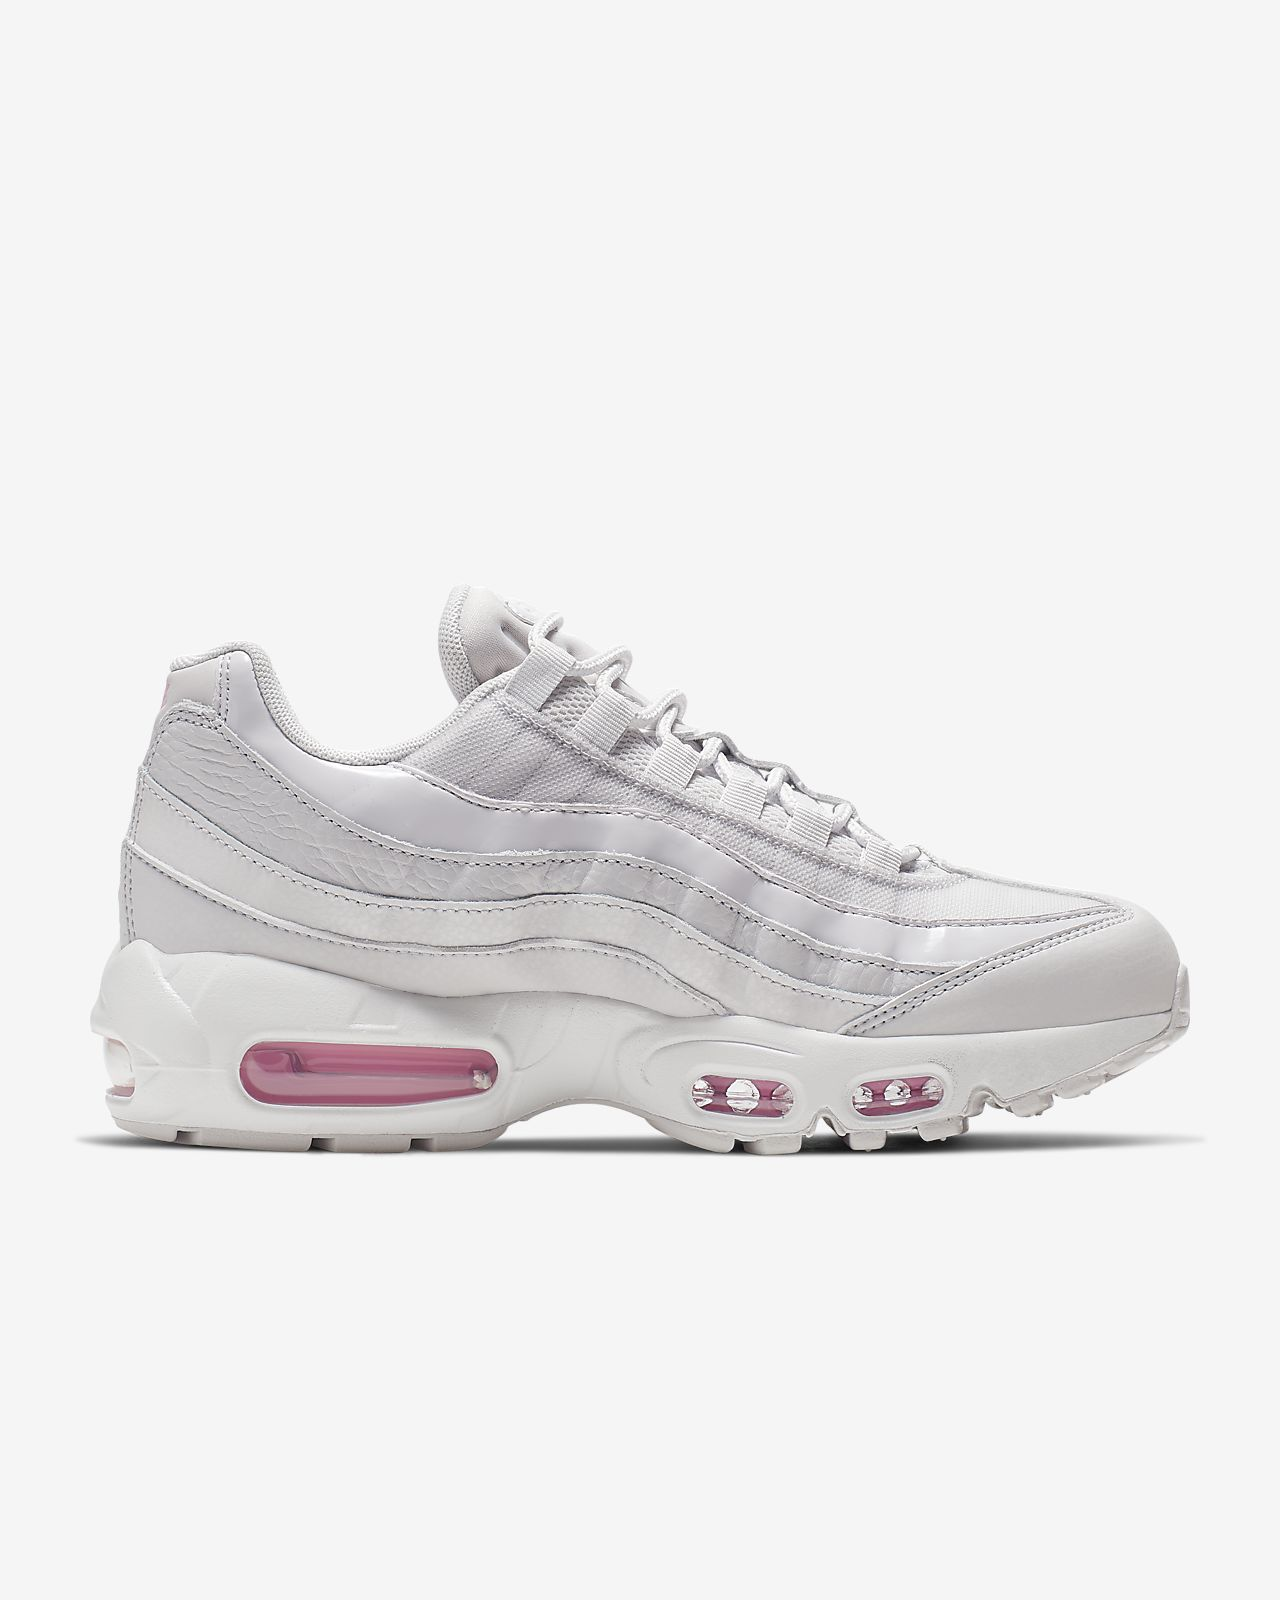 Pour Nike Max Se Chaussure 95 Air Femme ywmn8v0ON